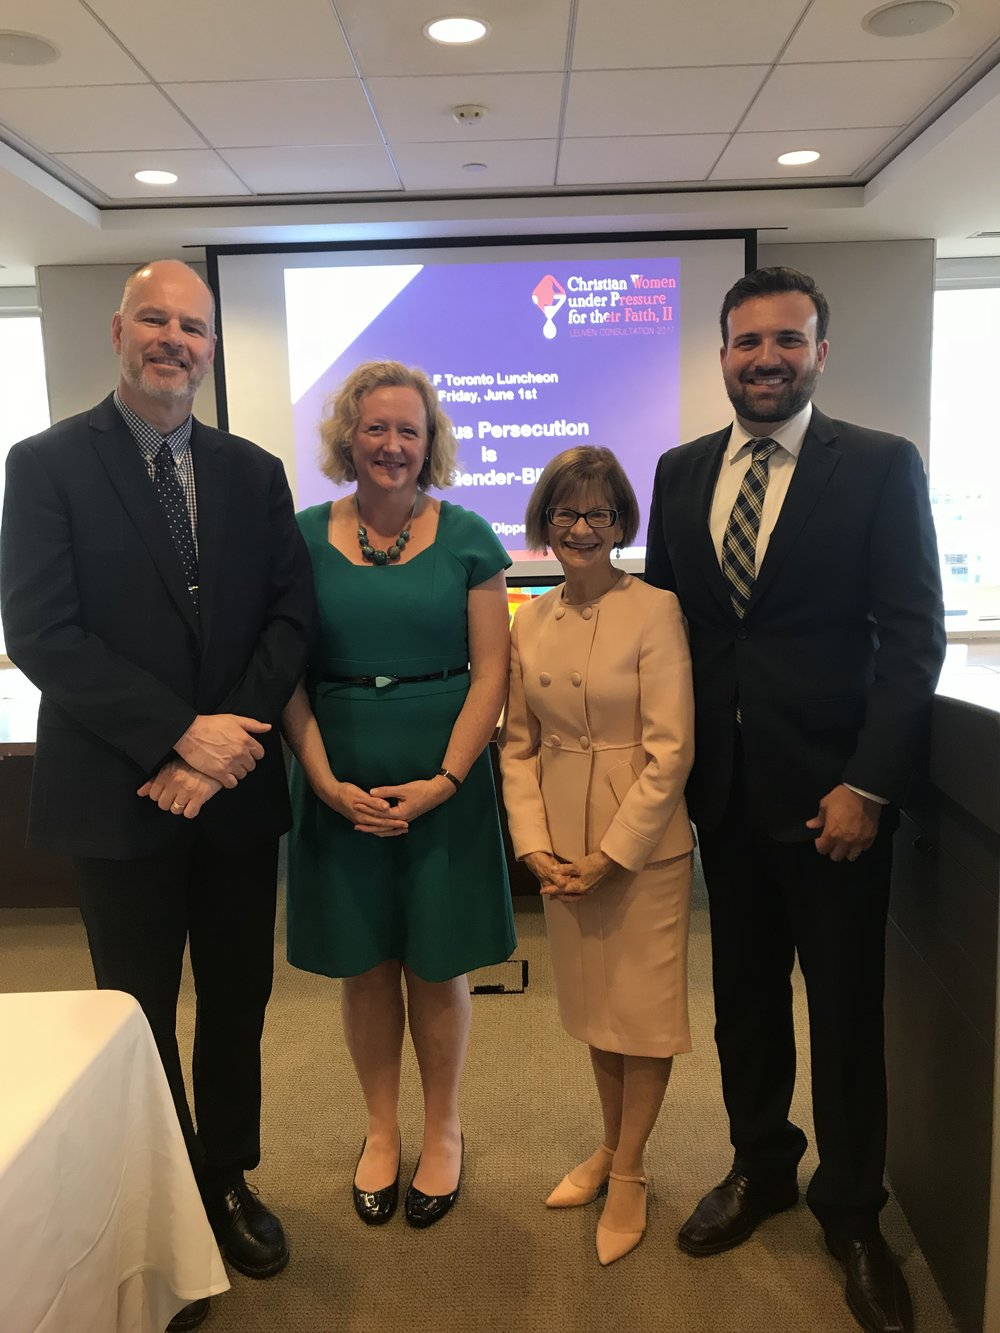 Pictured left to right: Floyd Brobbel (VP of International Ministry & Operations, VOM Canada), Emma,Ruth Ross (Special Advisor, CLF), and Derek Ross (ED & General Counsel, CLF)